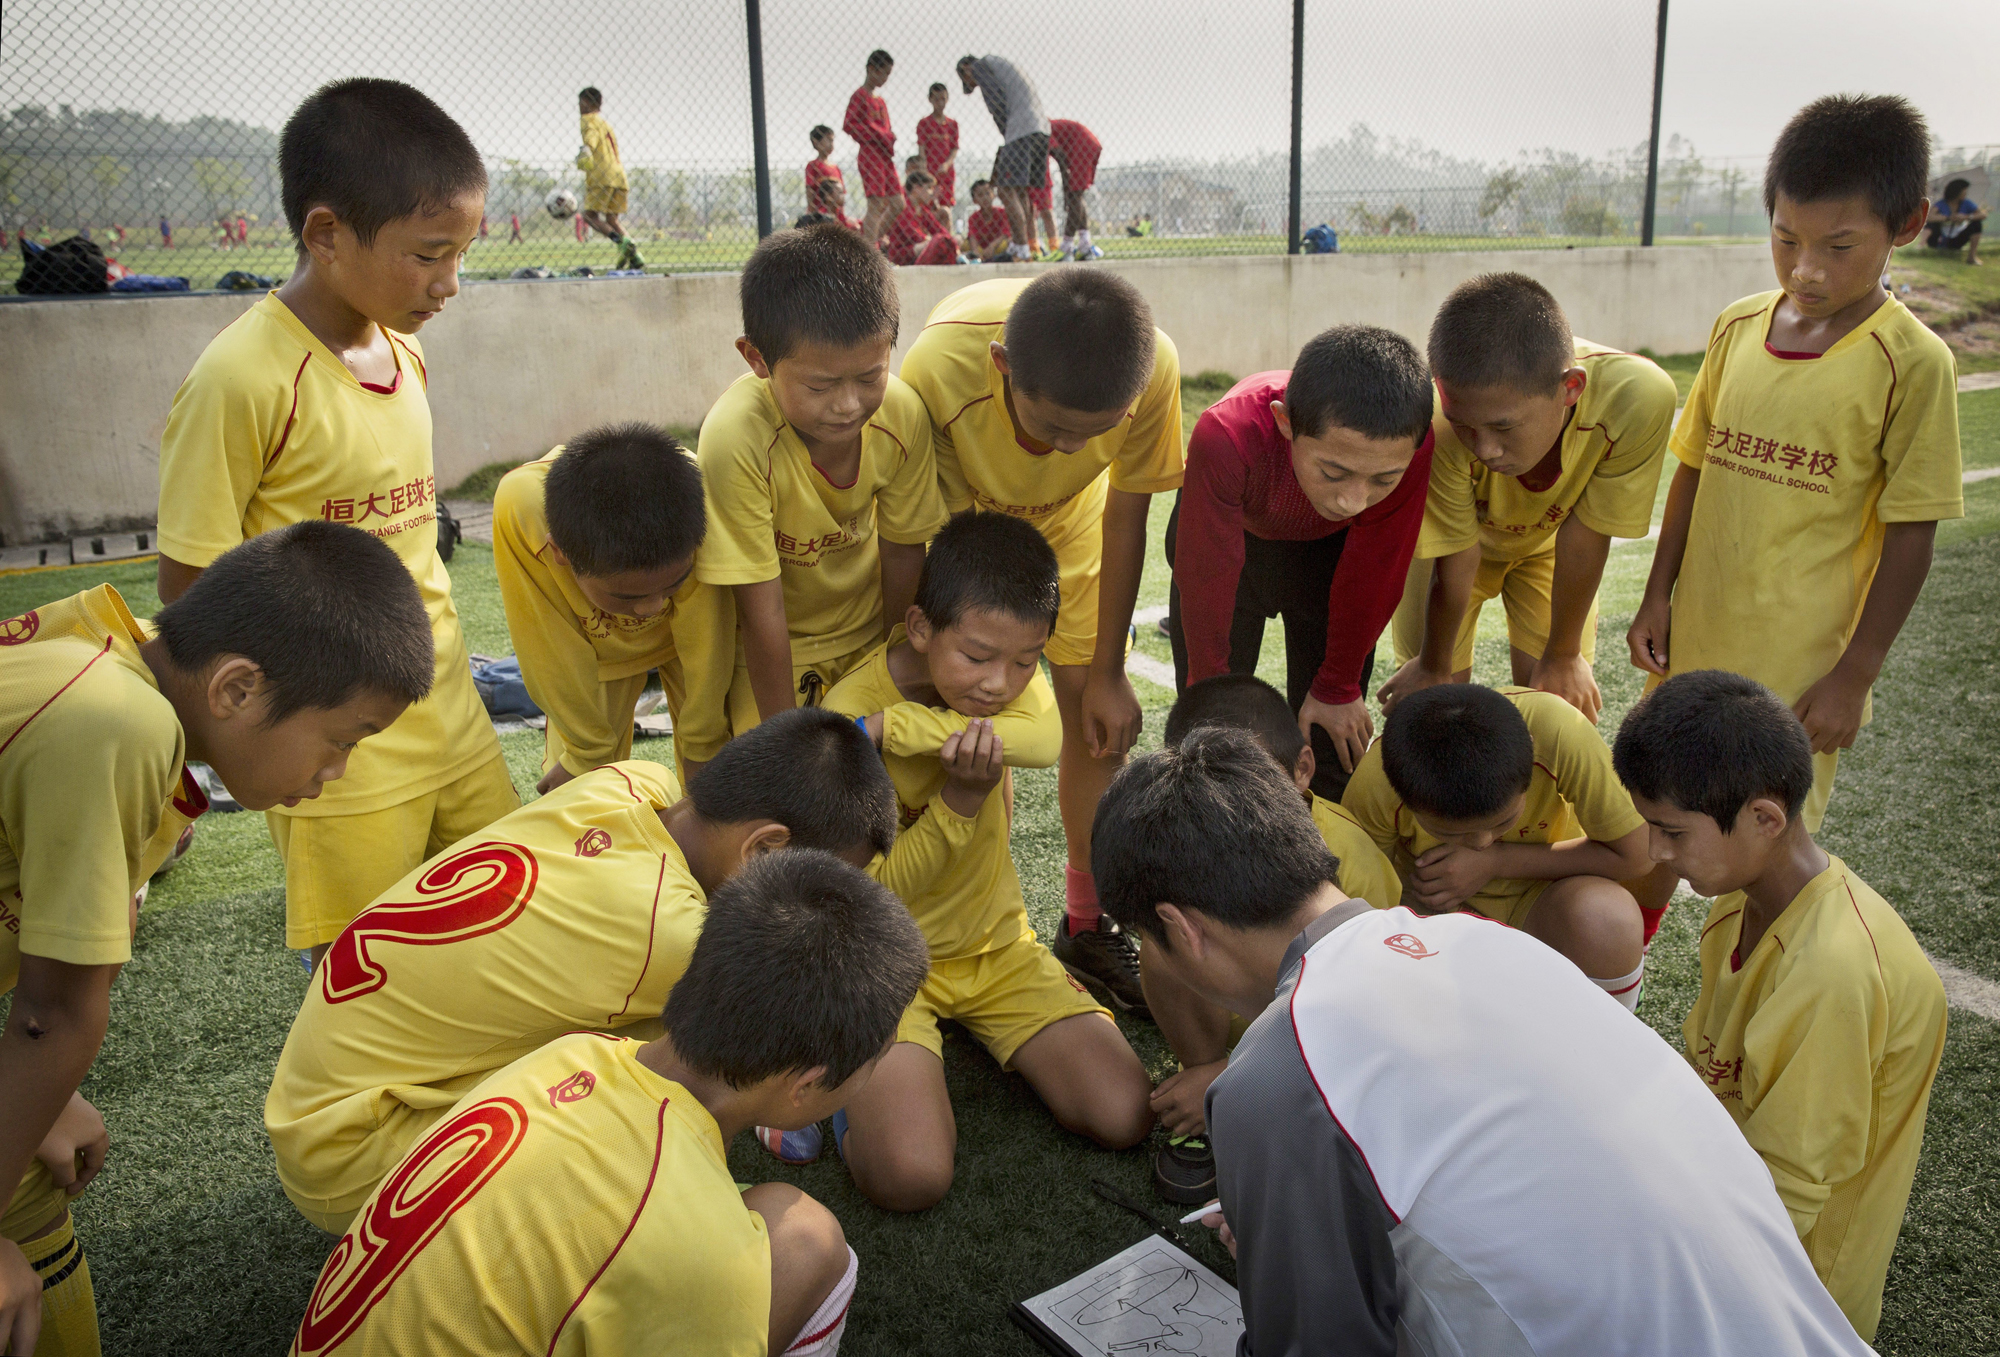 Players listen to instructions from the coach prior to a training match.